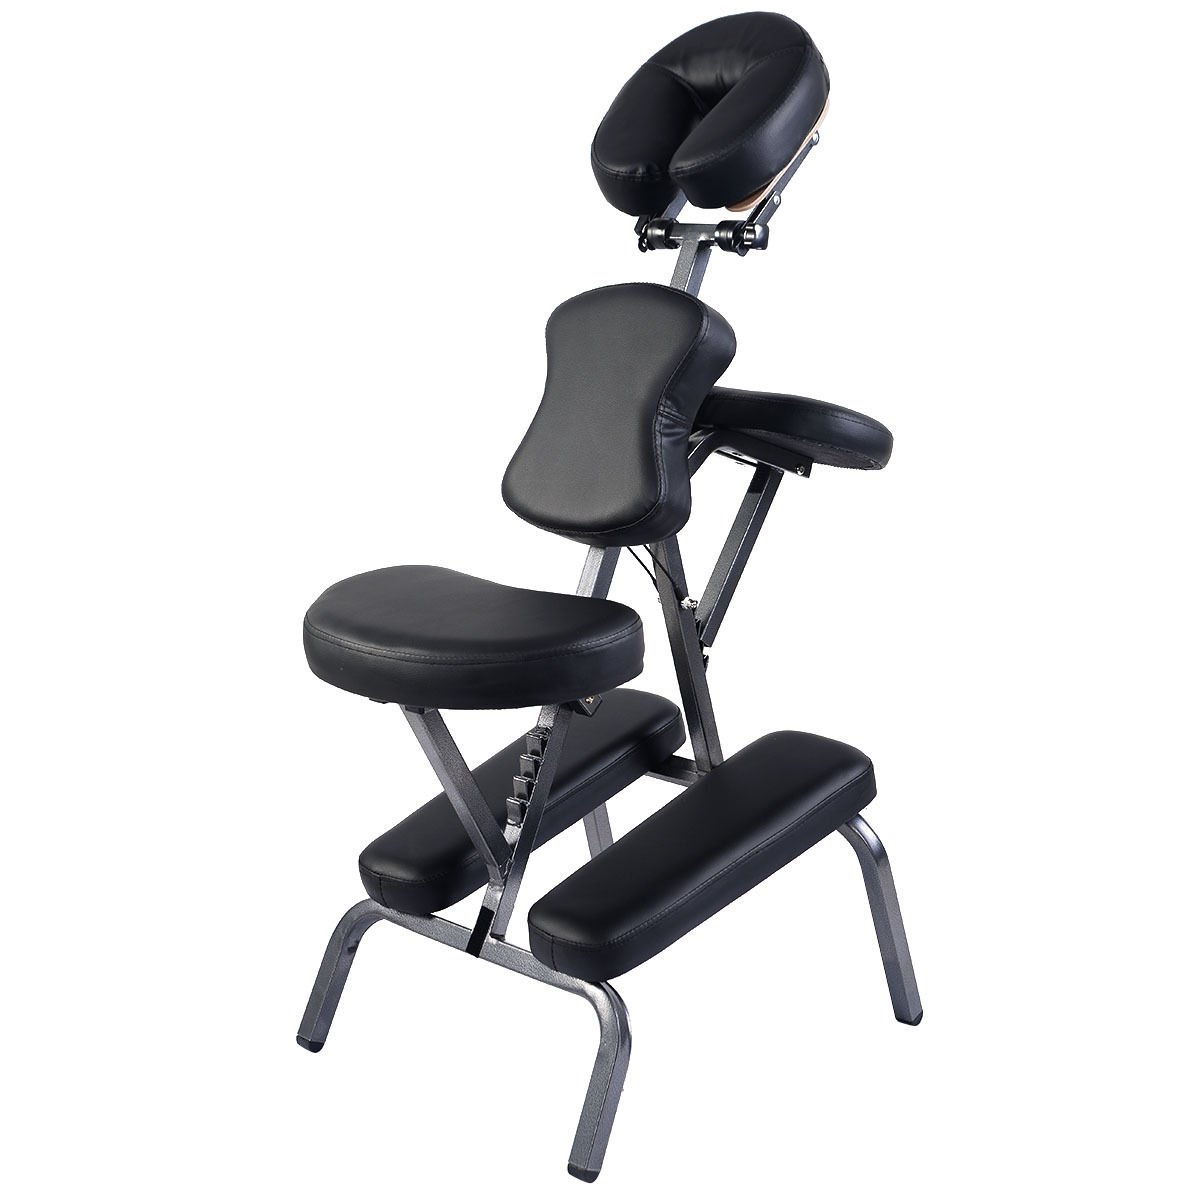 chairs for archives wiener new uncle category portable massage chair travel wholesale s sale product leather